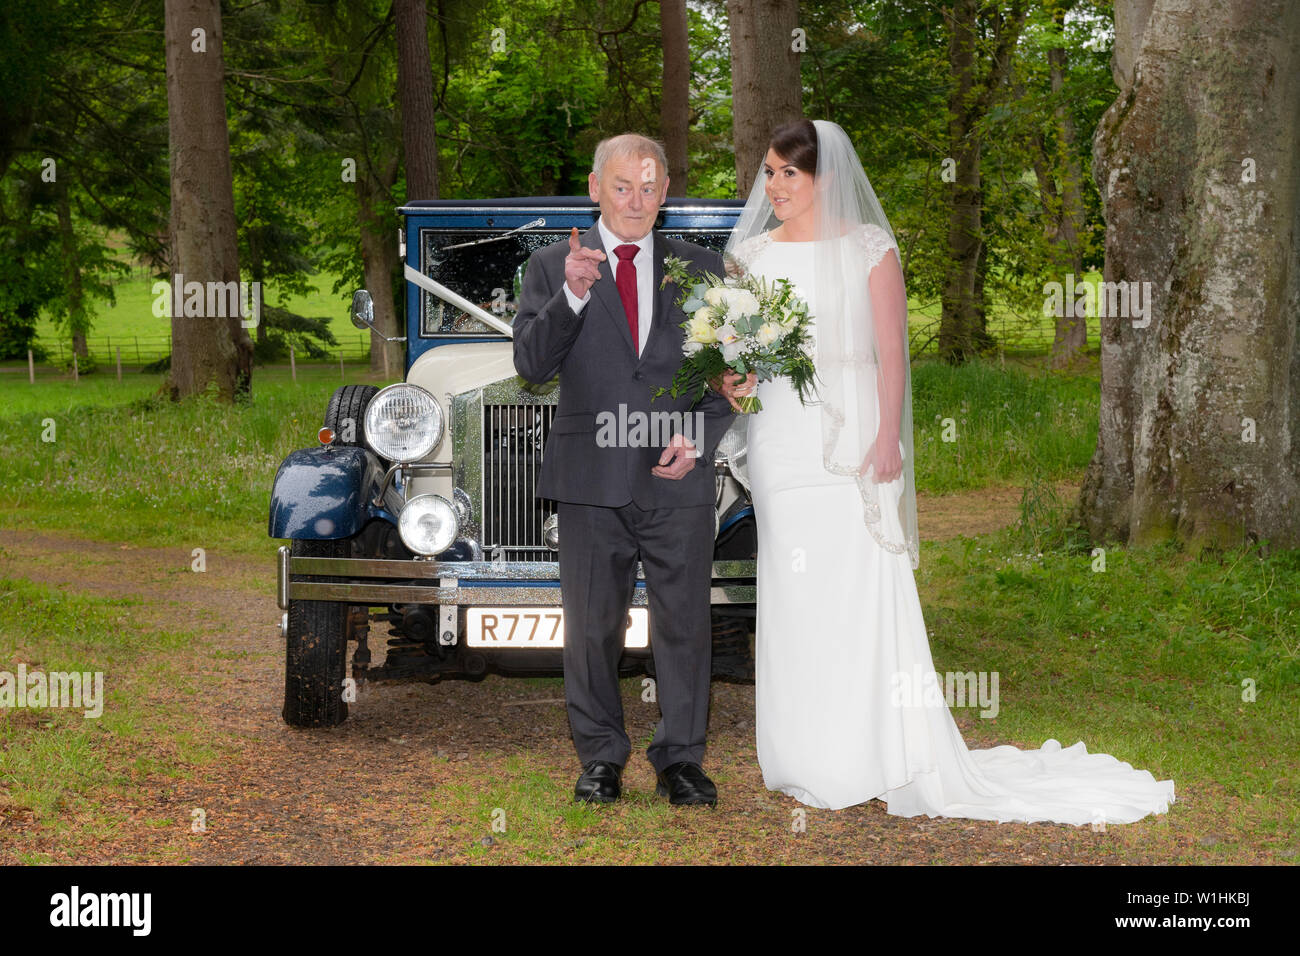 A bride and her Grandfather from a Scottish wedding which took place on the Belladrum Estate, Kiltarlity, Inverness-shire. - Stock Image